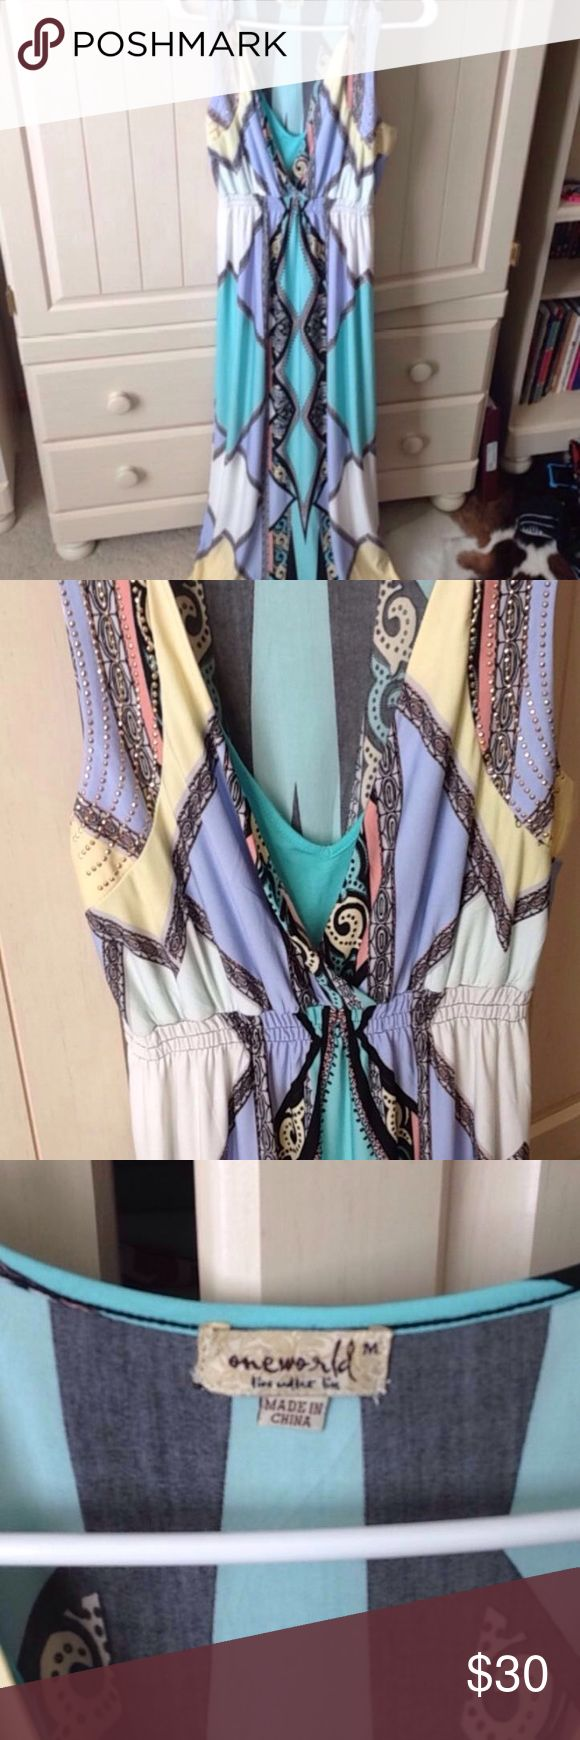 Pastel maxi dress Cute maxi dress with pastel colors. It has a little bit of beading on the top and is in great condition Dresses Maxi